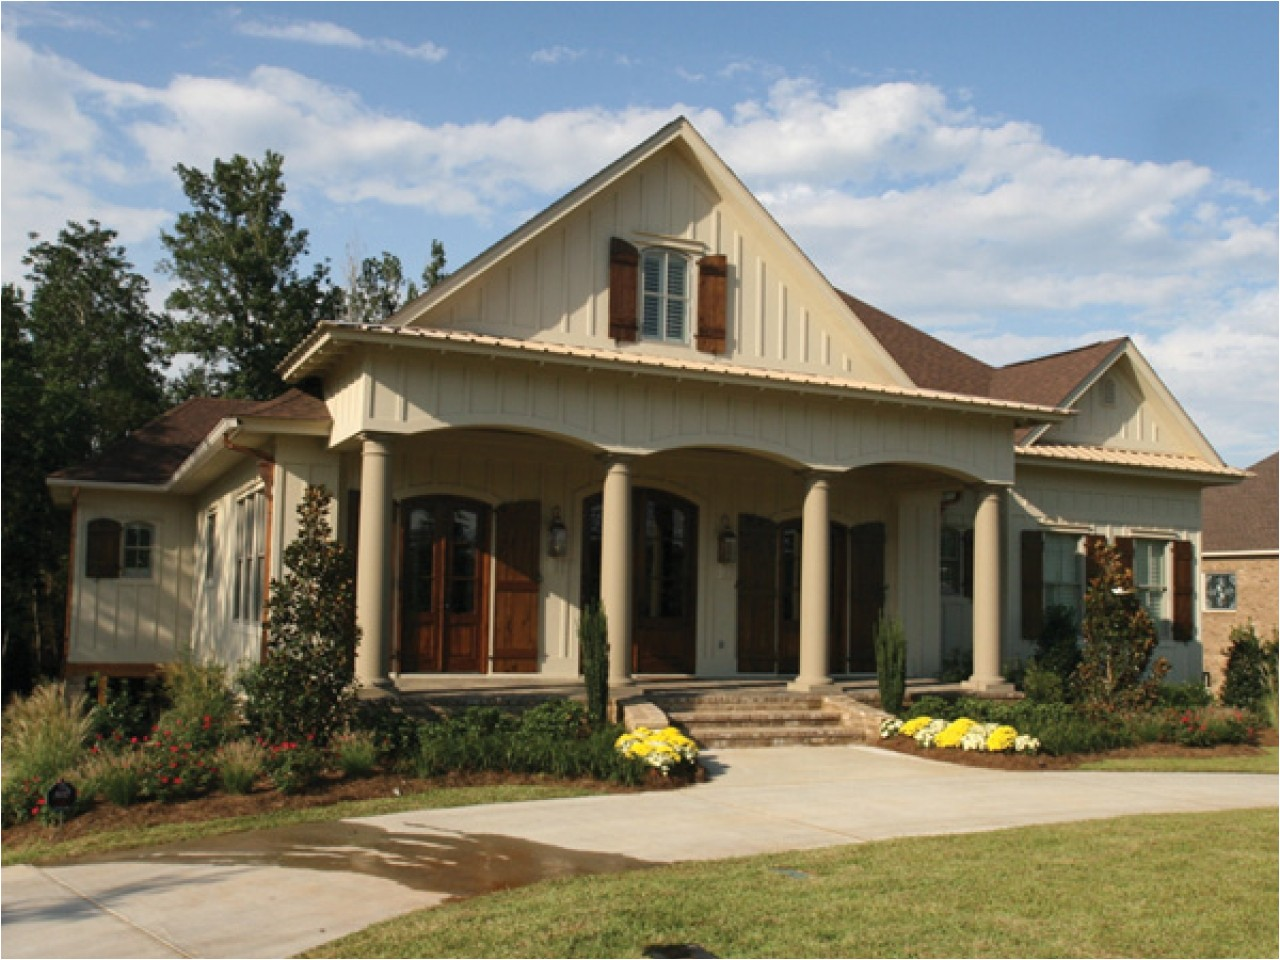 dd161cd81742518d briley southern craftsman home plan 024s 0025 house plans and more rustic craftsman home exterior